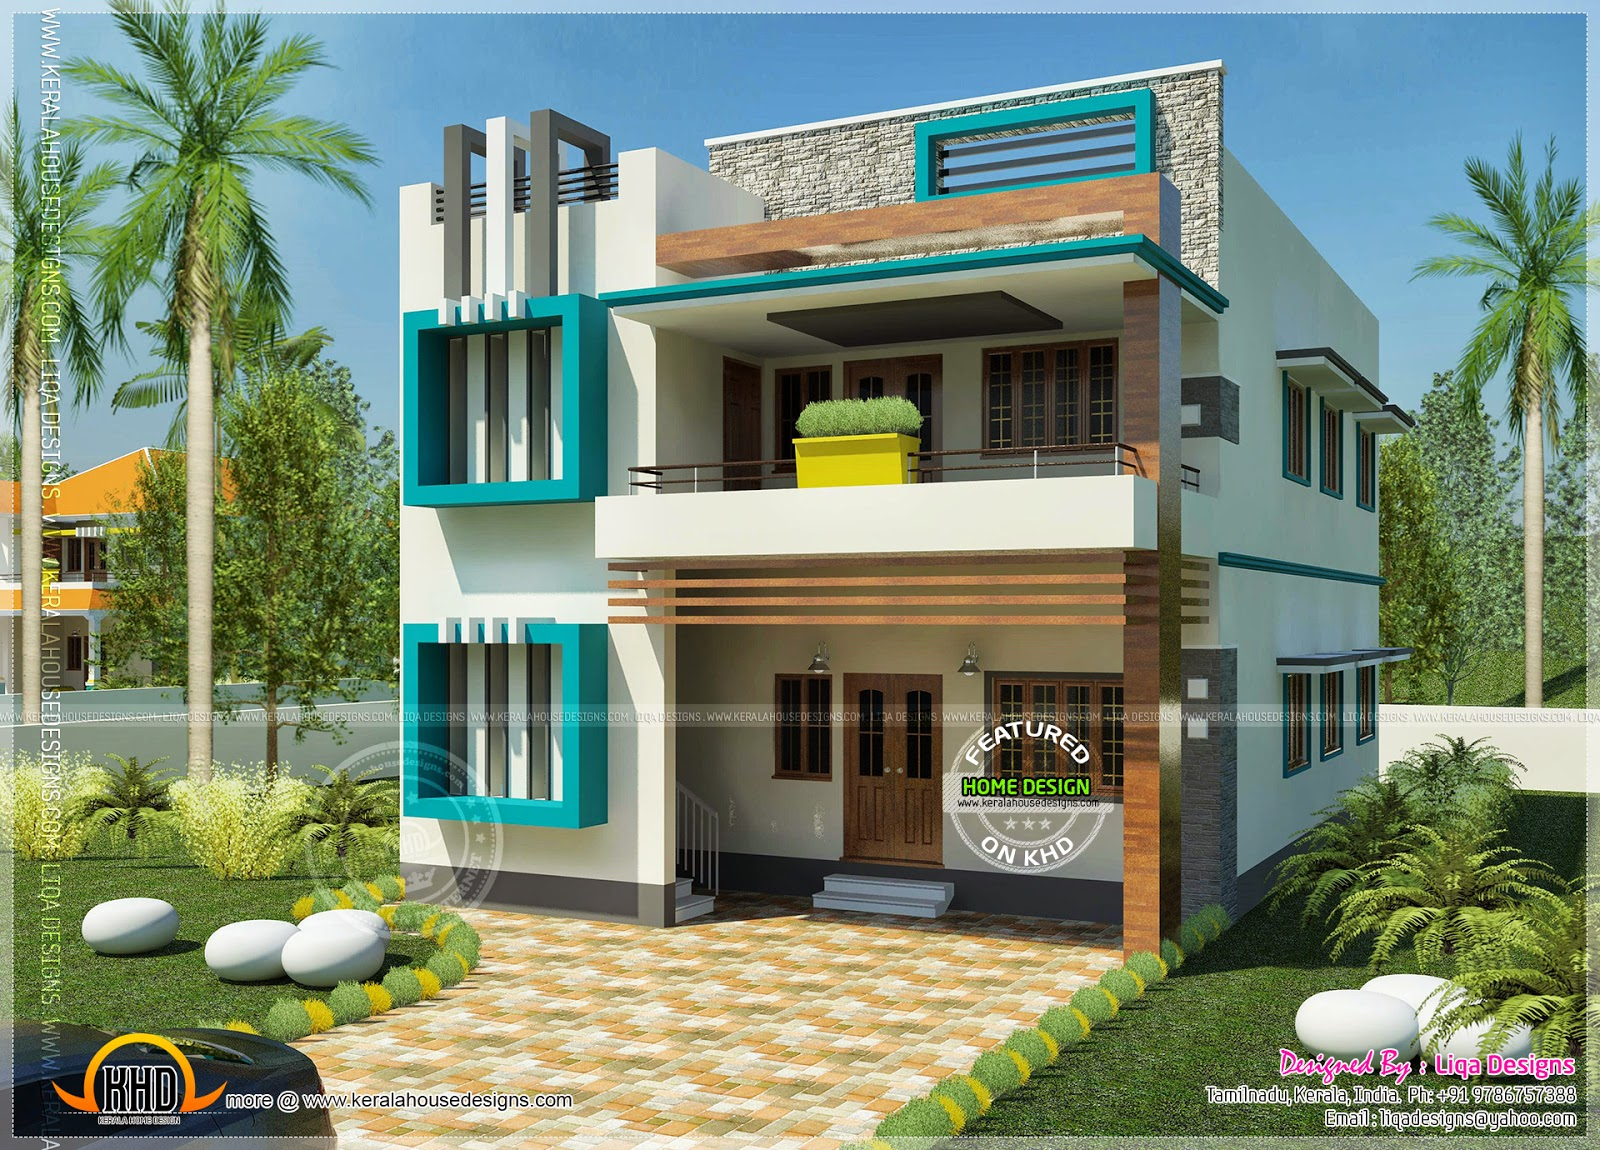 South indian contemporary home kerala home design and for Indian small house design 2 bedroom